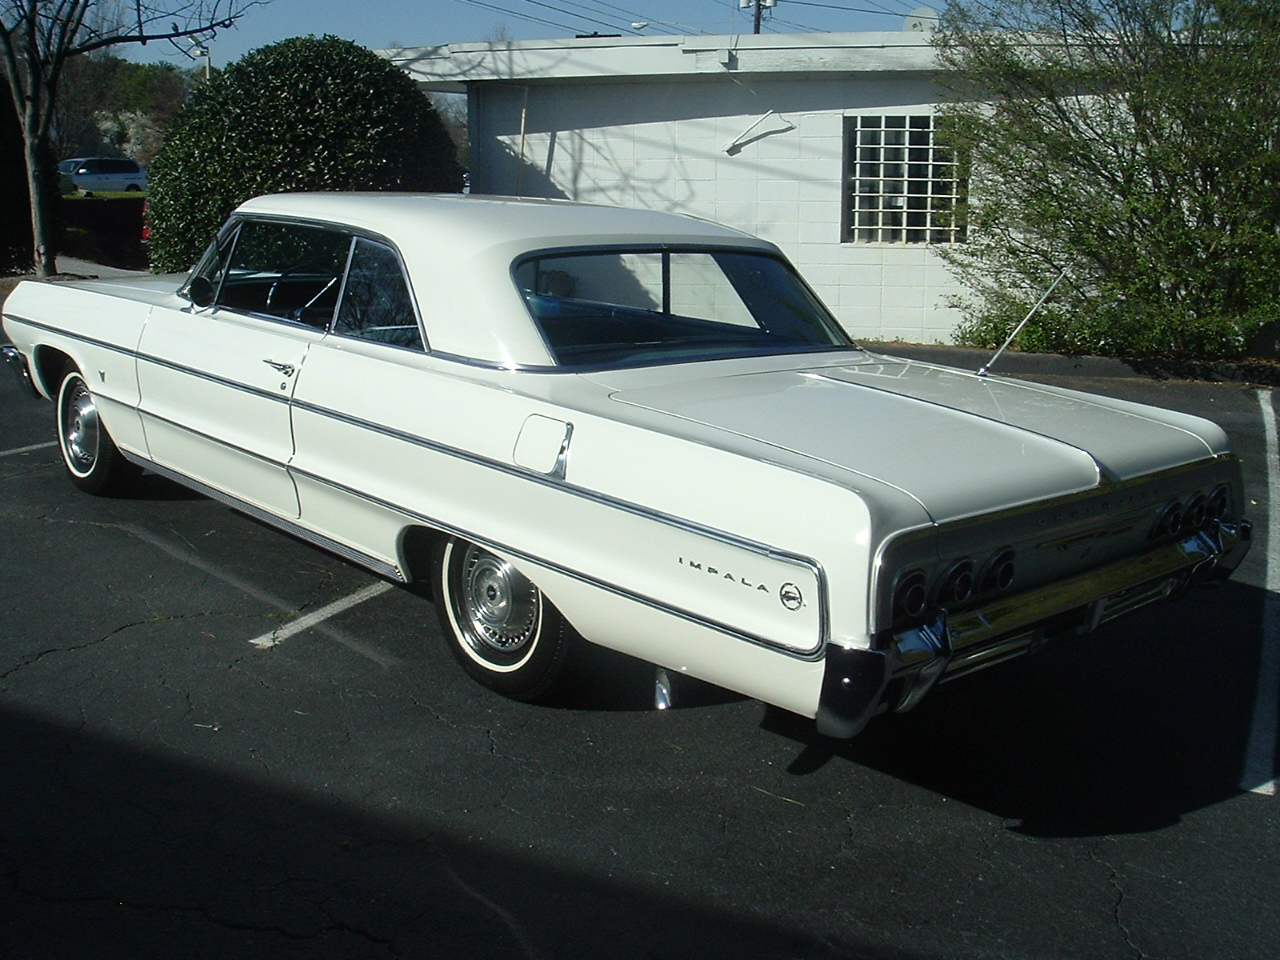 1964 Impala Two Door Hardtop White (3)